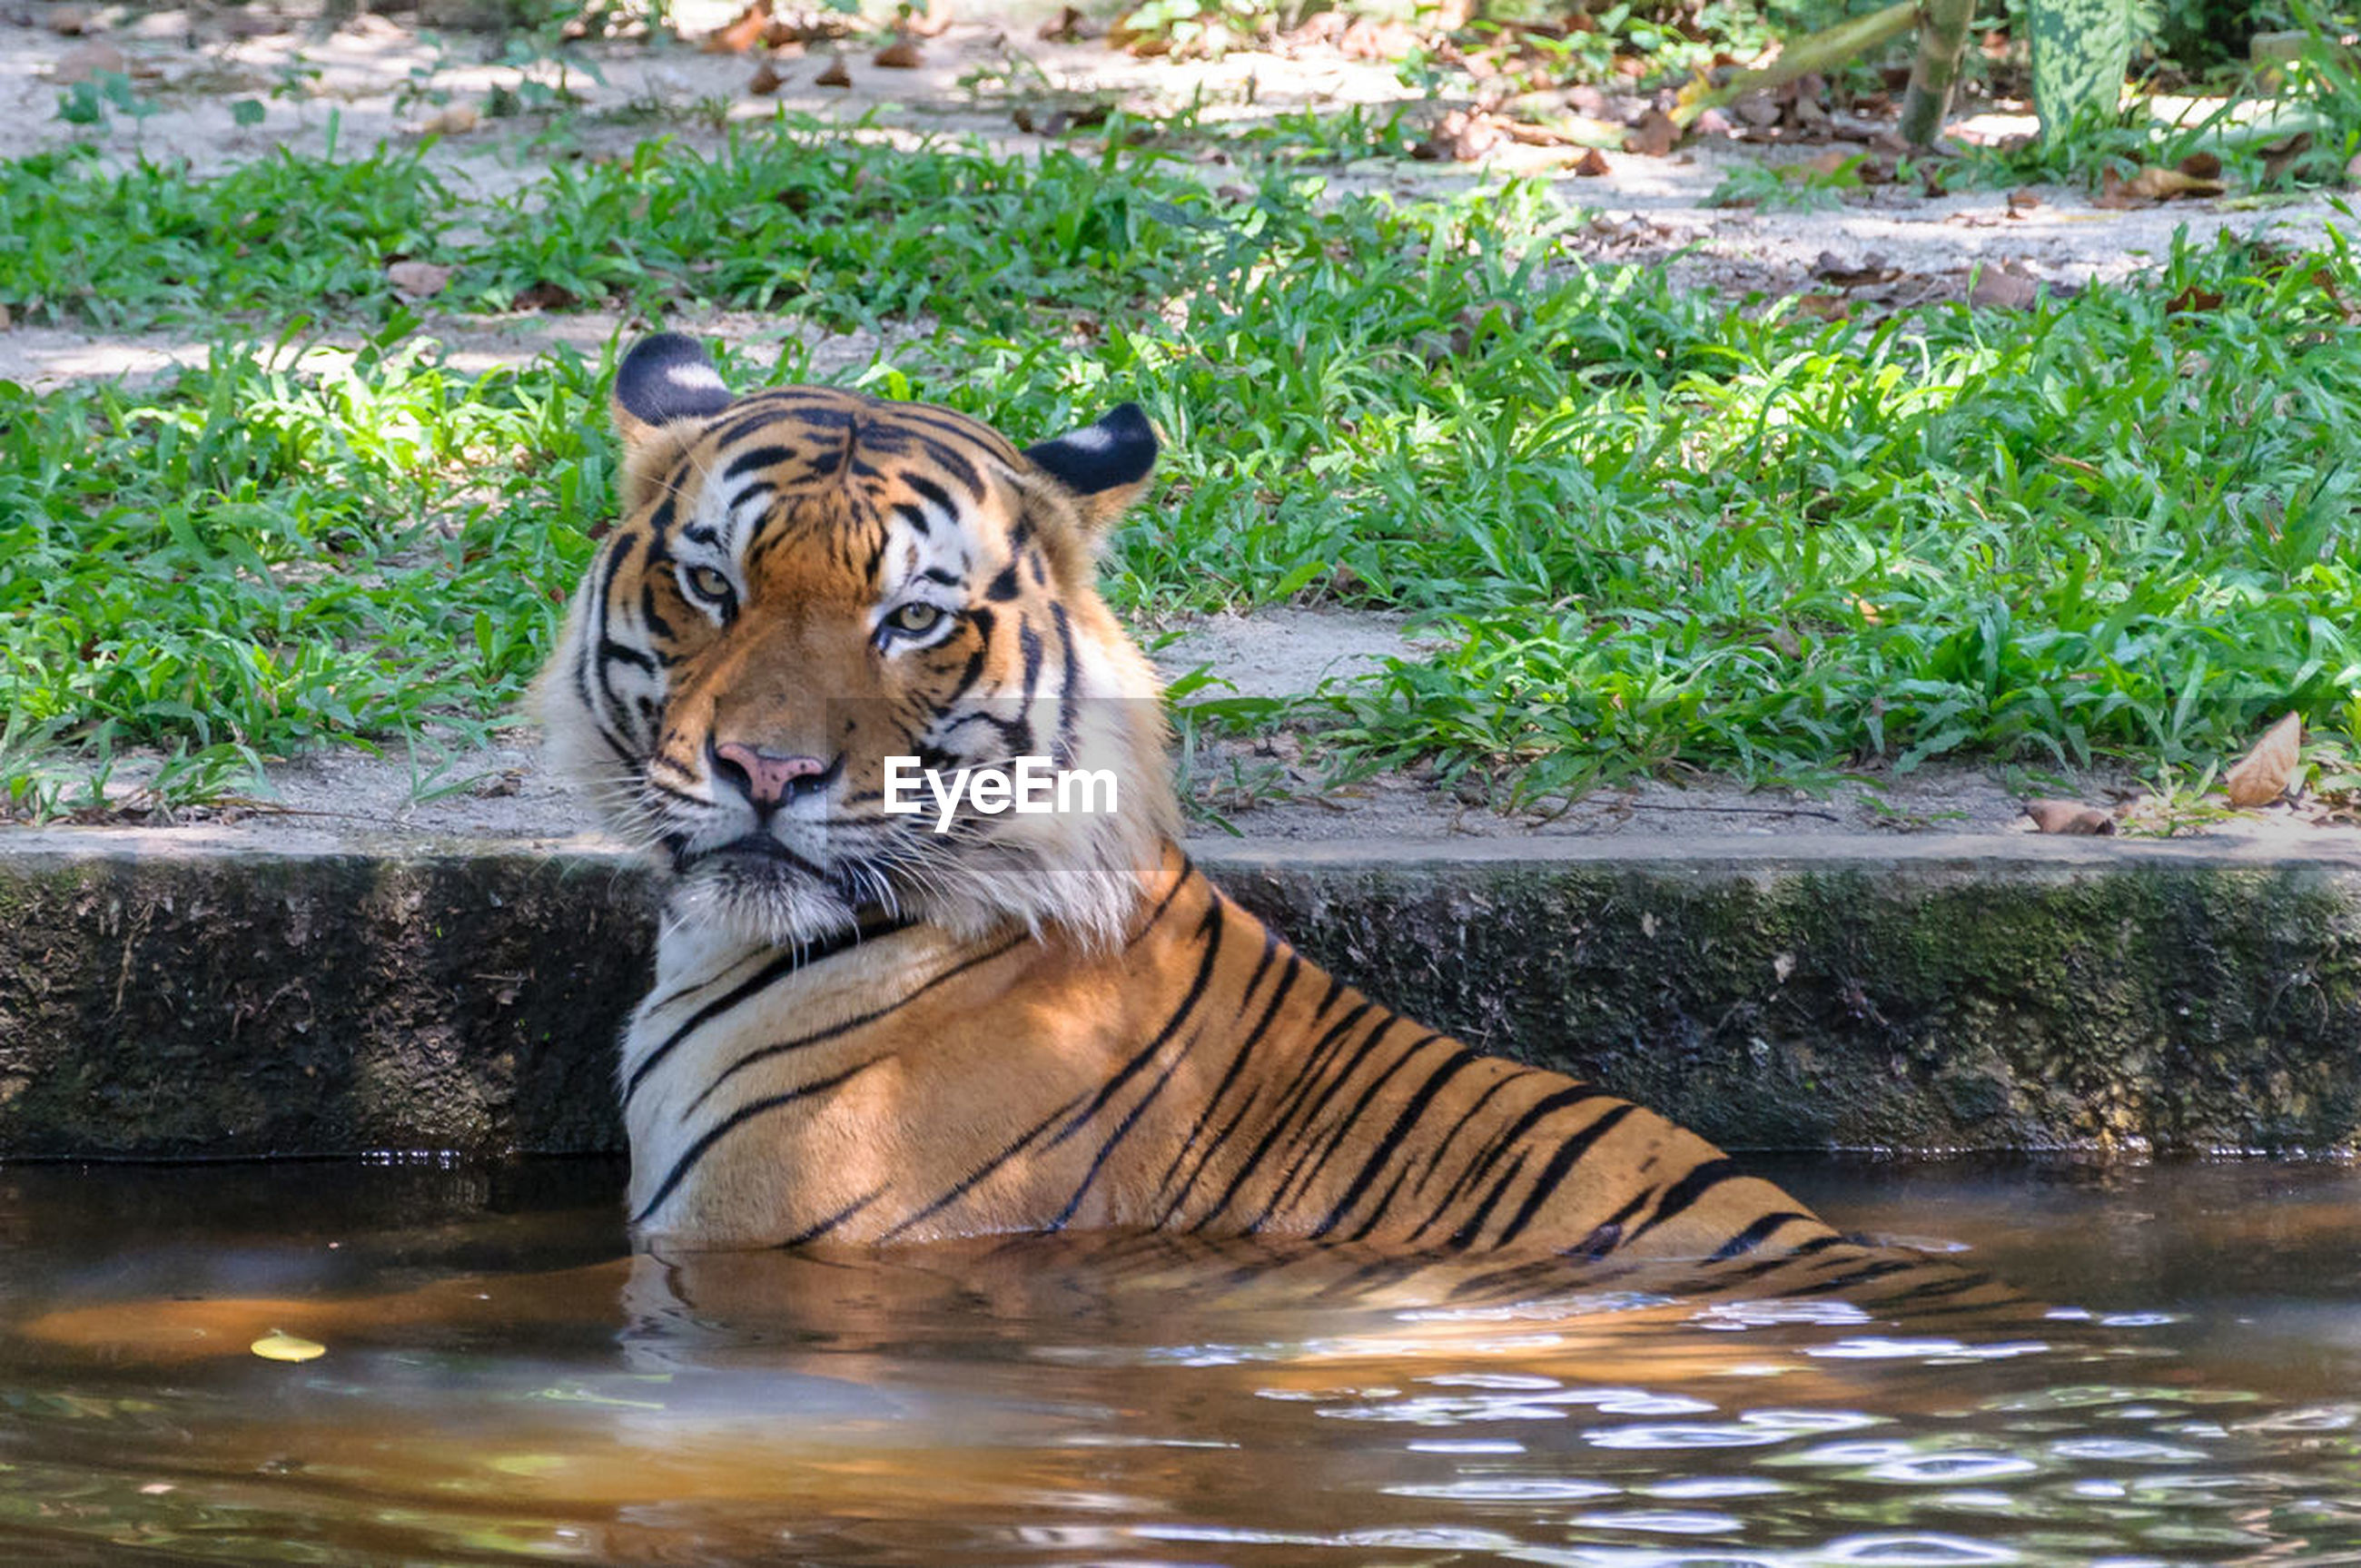 animals in the wild, tiger, one animal, animal themes, water, day, outdoors, animal wildlife, nature, mammal, relaxation, no people